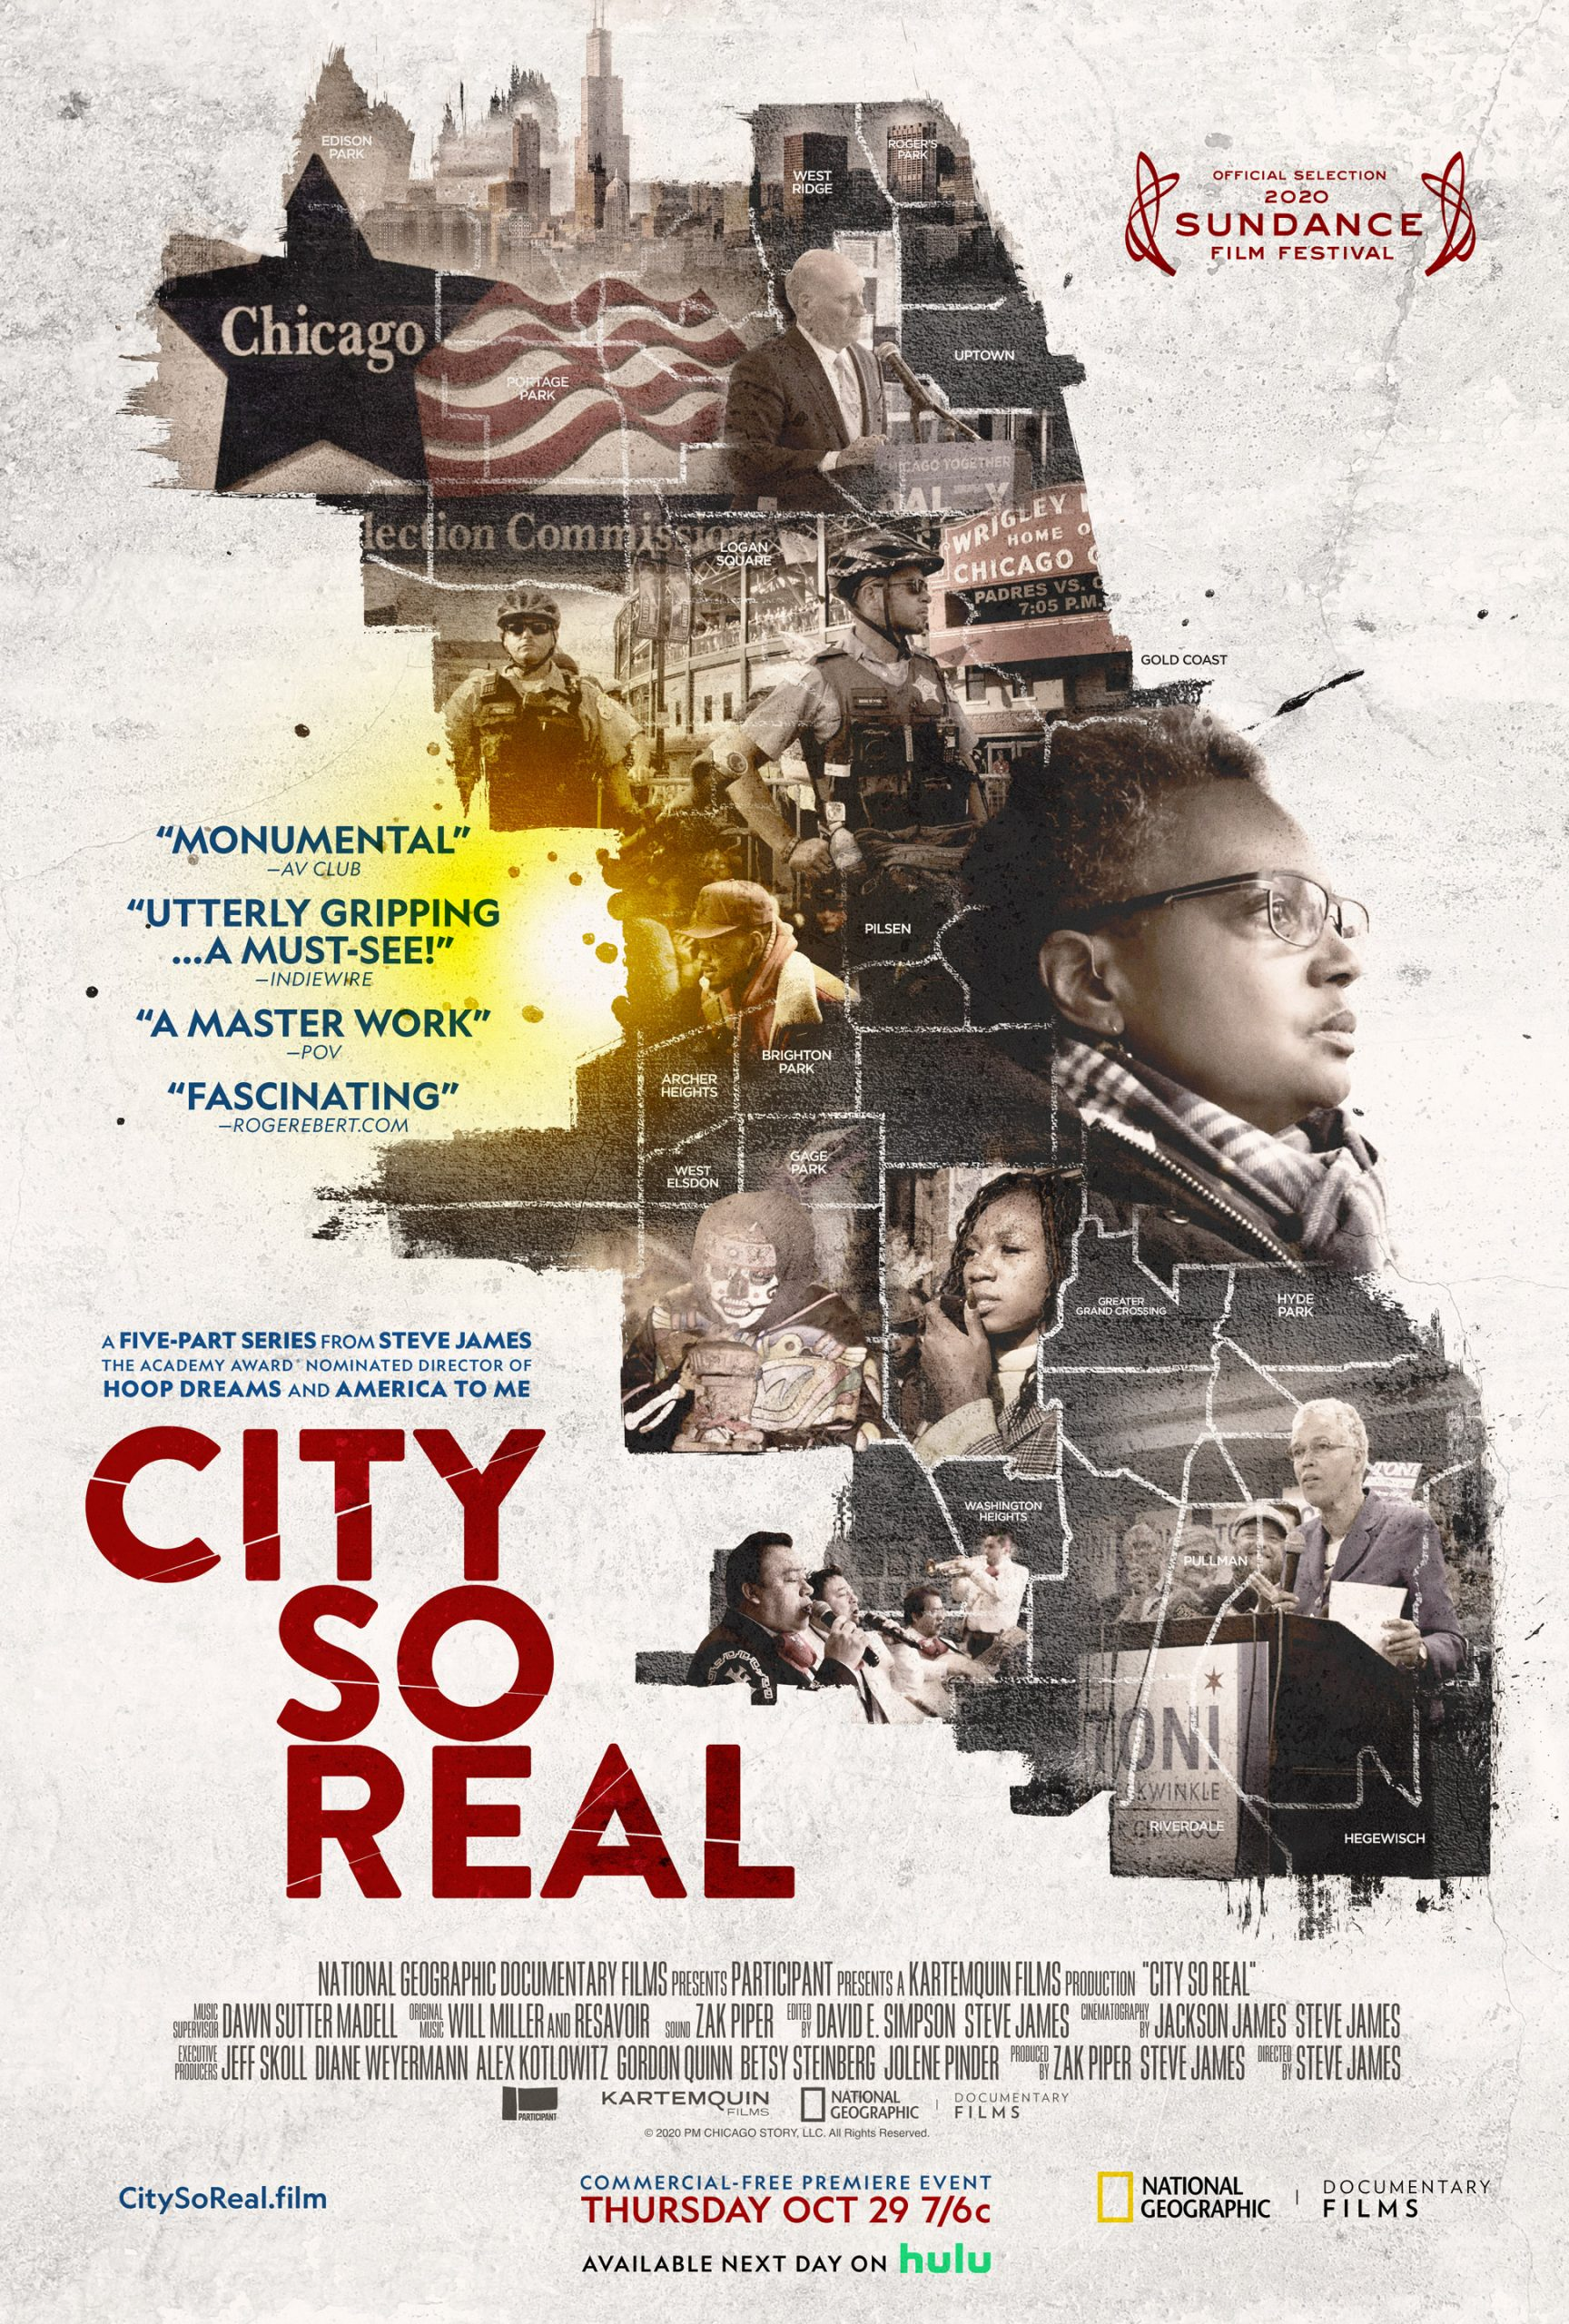 National Geographic to Broadcast Five-Part Critically Acclaimed Series 'City So Real' From Academy Award®-Nominated Filmmaker Steve James in an Unprecedented One-Night, Five-Hour, Commercial-Free Event